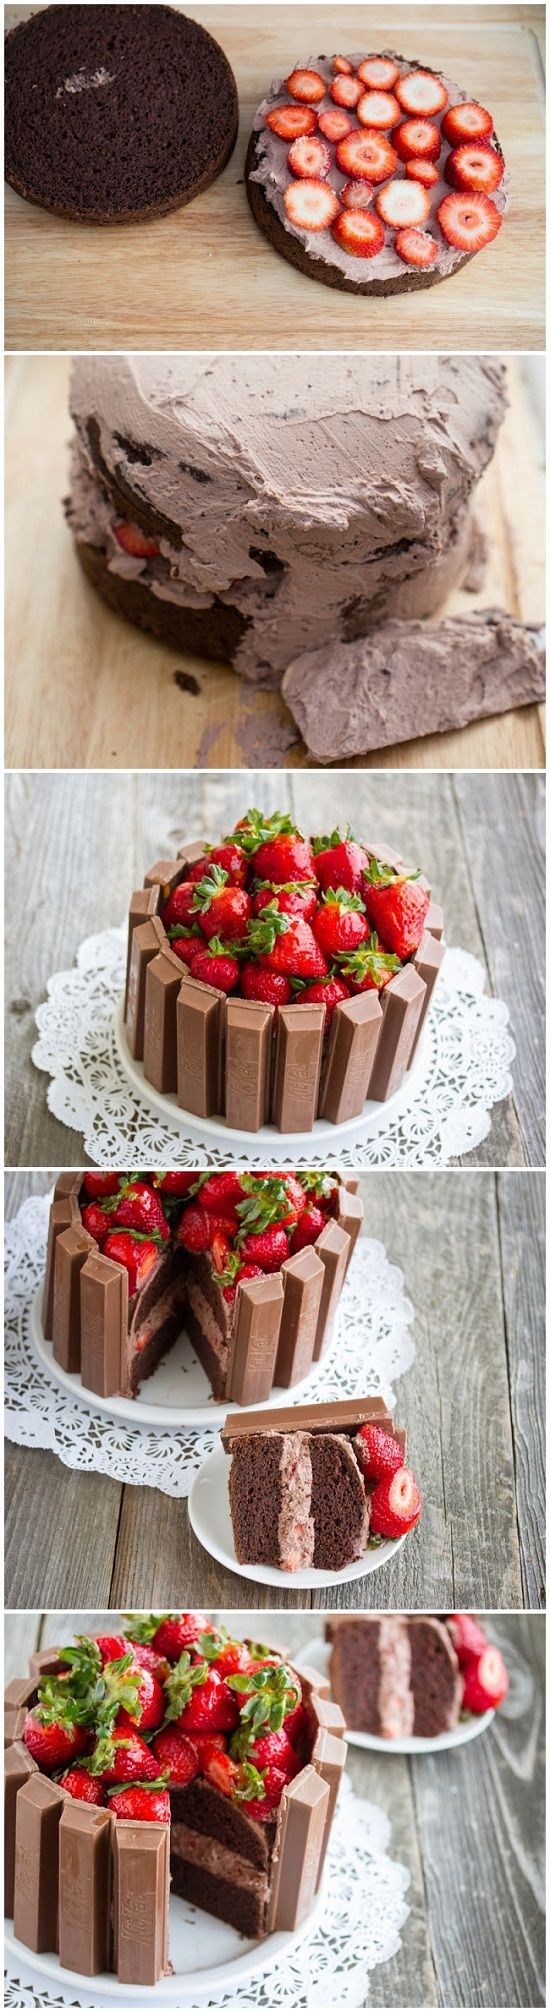 Strawberry Chocolate Kit Kat Cake: